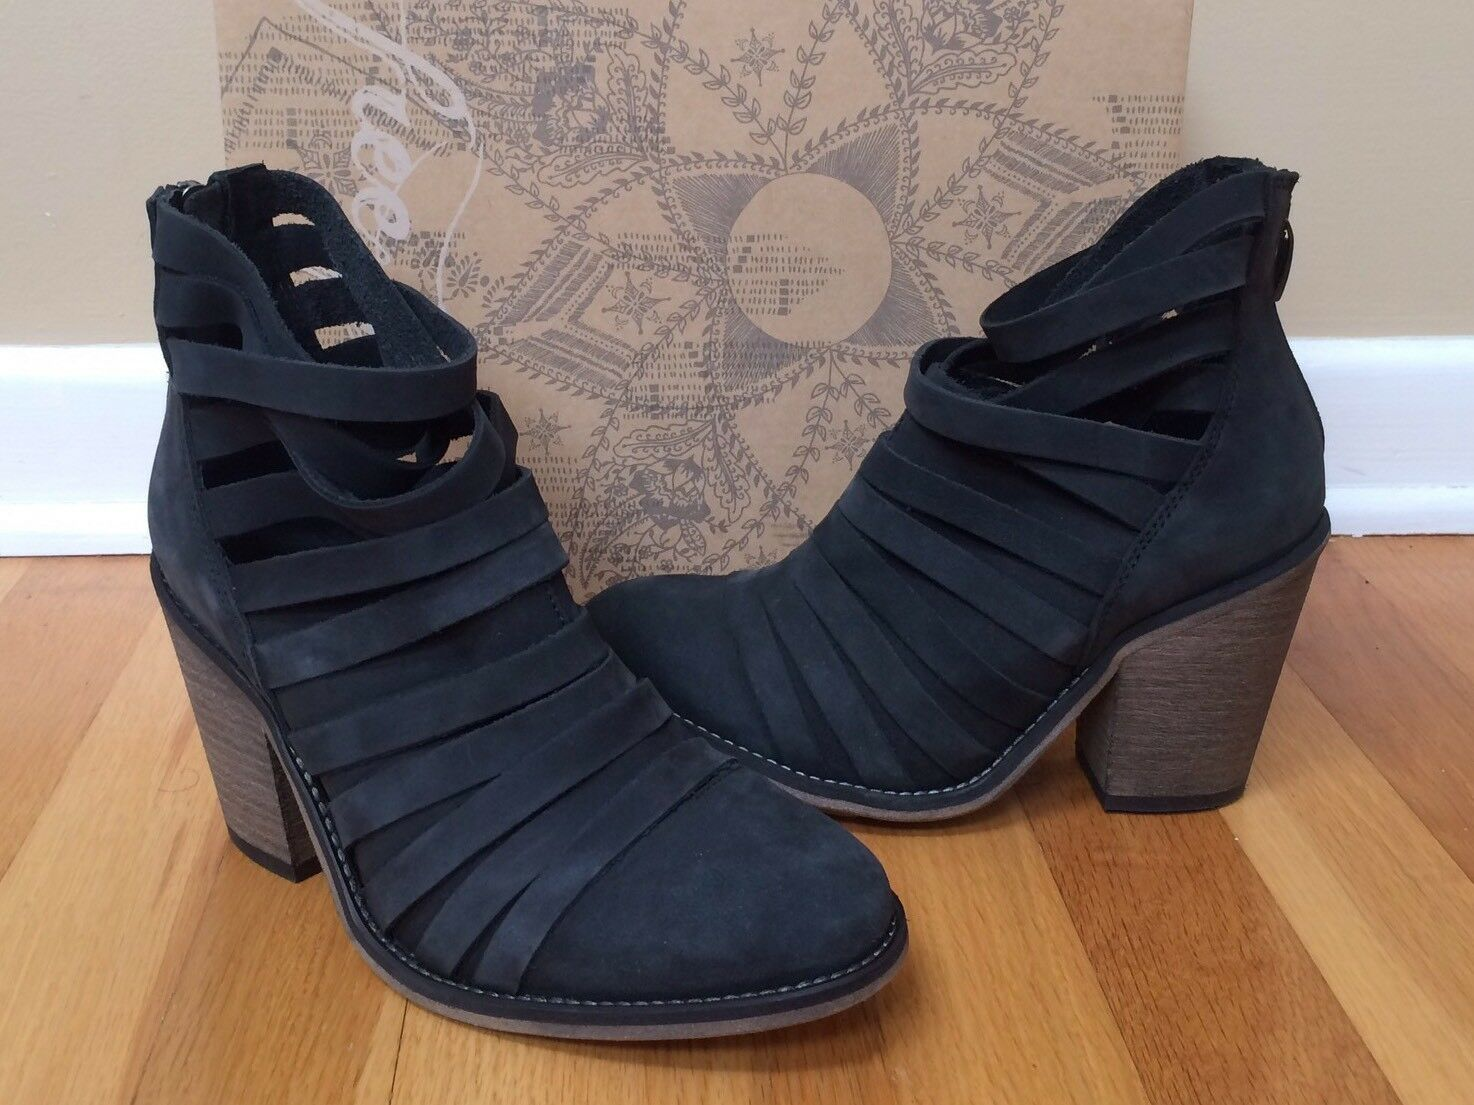 FREE PEOPLE 'Hybrid Heel' Strappy Leather Ankle Boot Size 36 US New